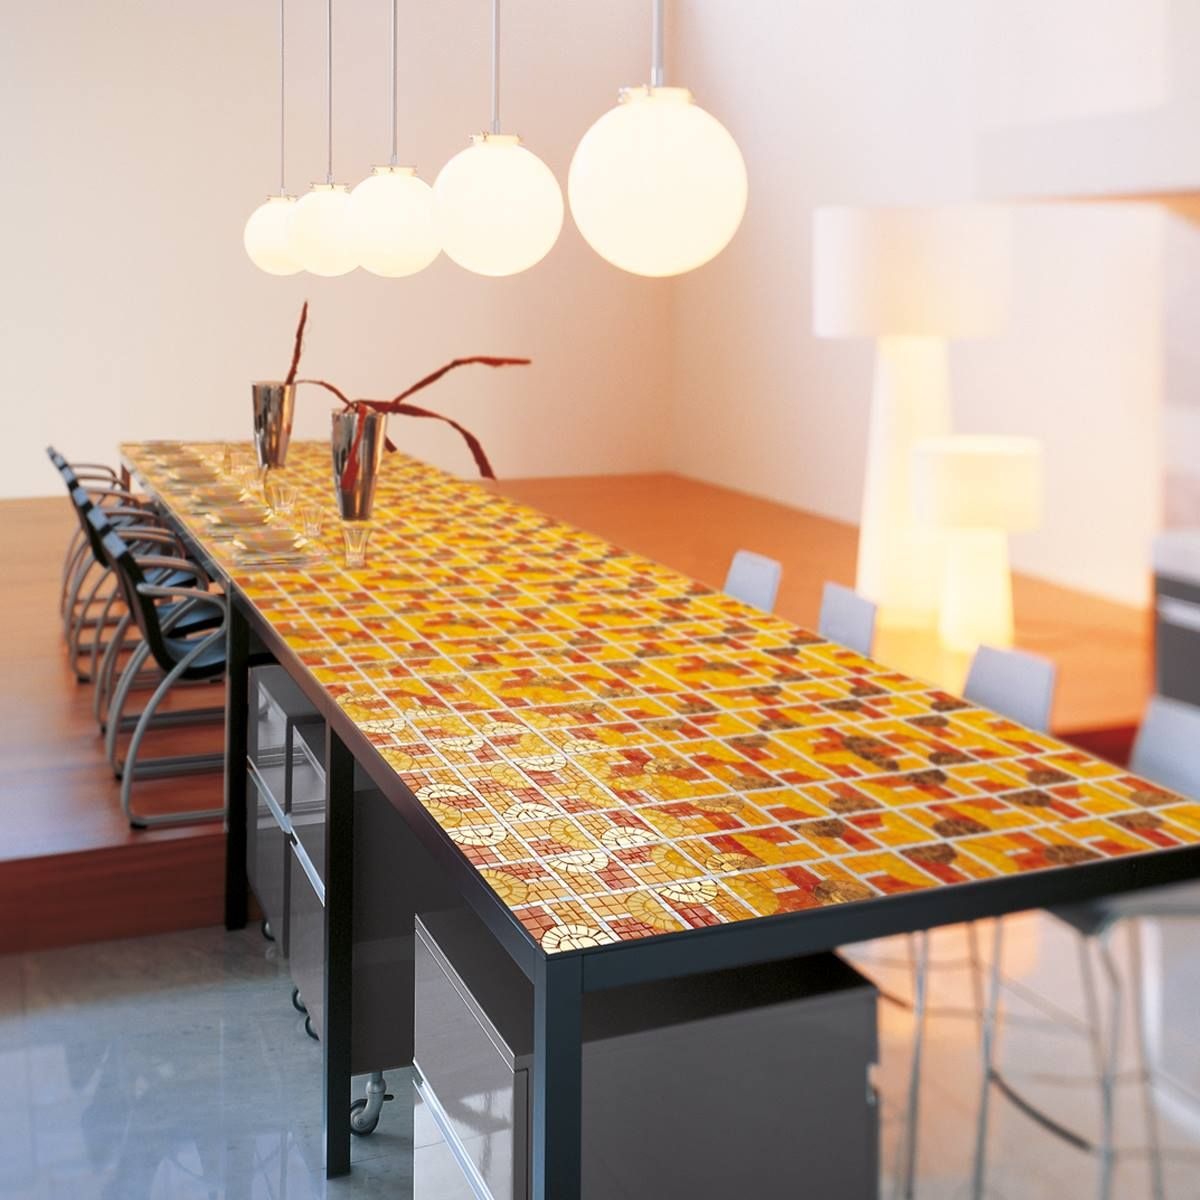 Exterior Home Designideas: A Table Realized With Orange Tesserae: The Unexpected Idea